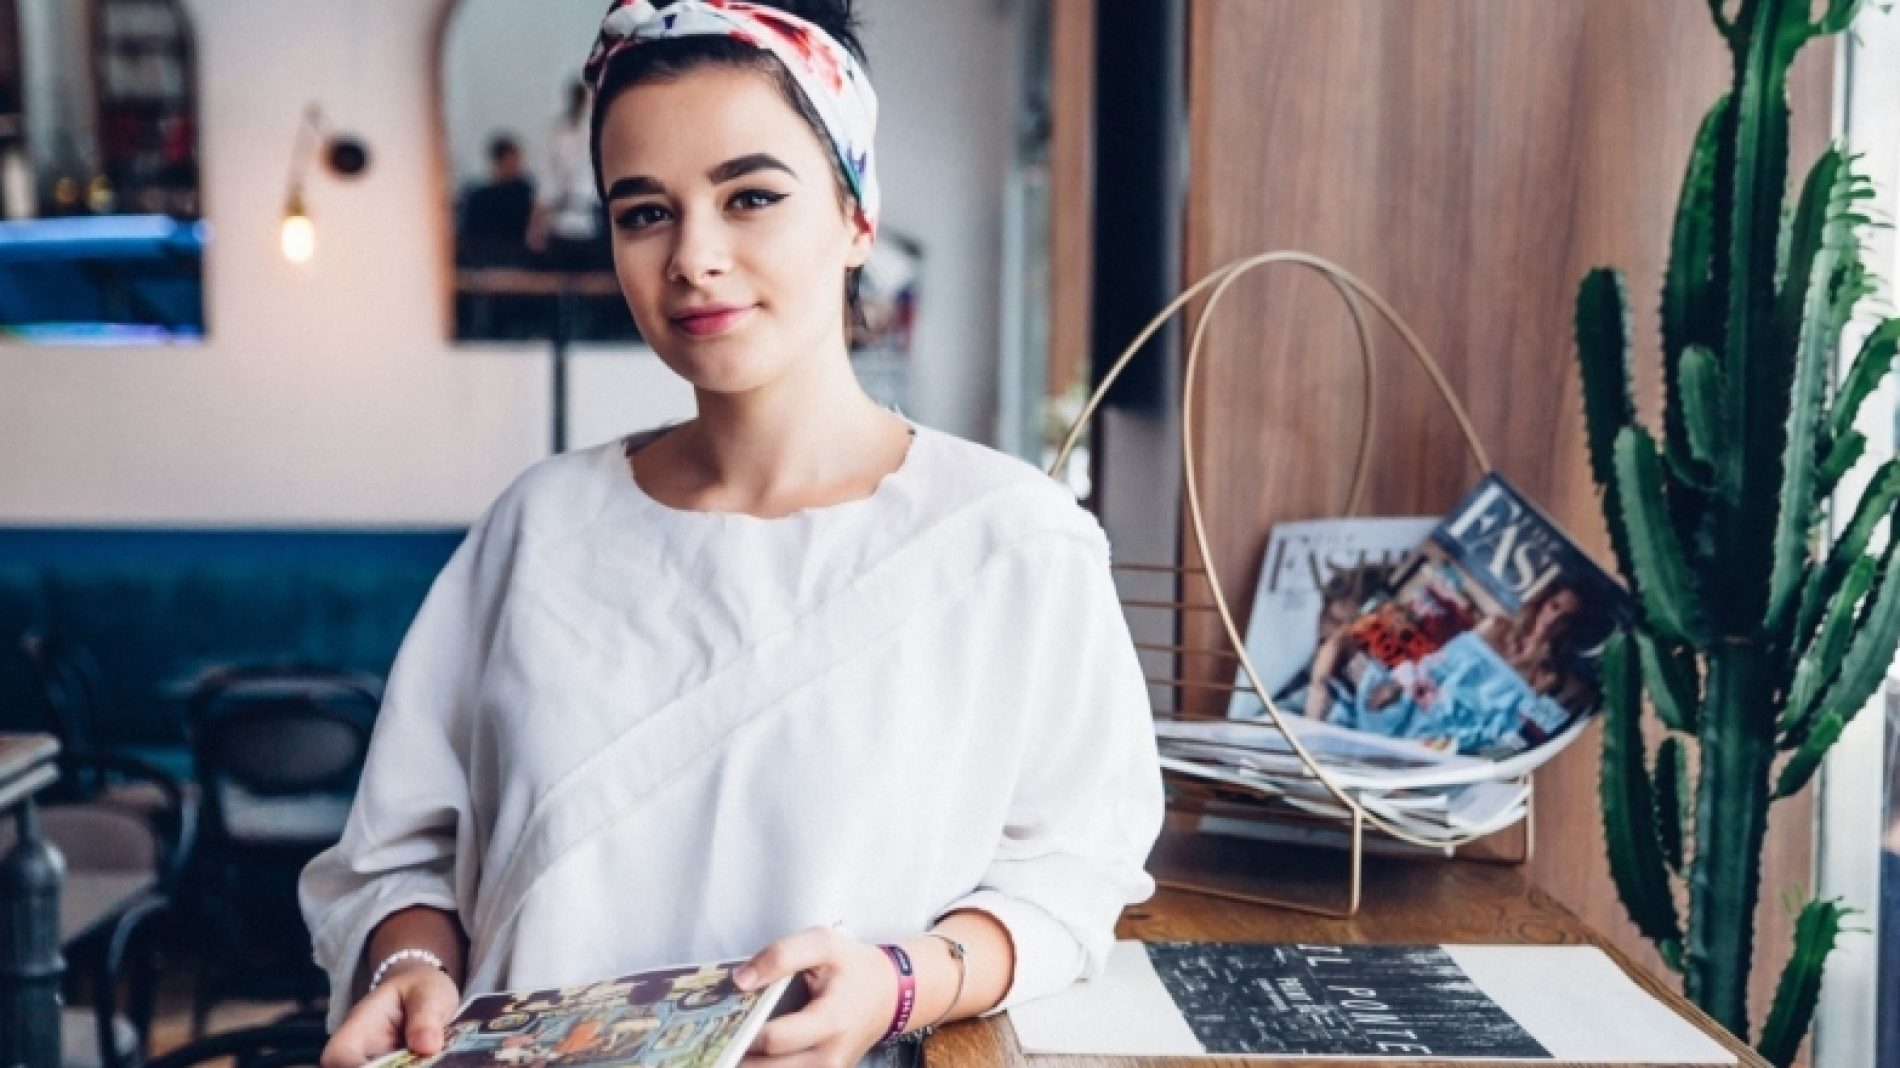 Young-person-with-magazines-OVdTkQ